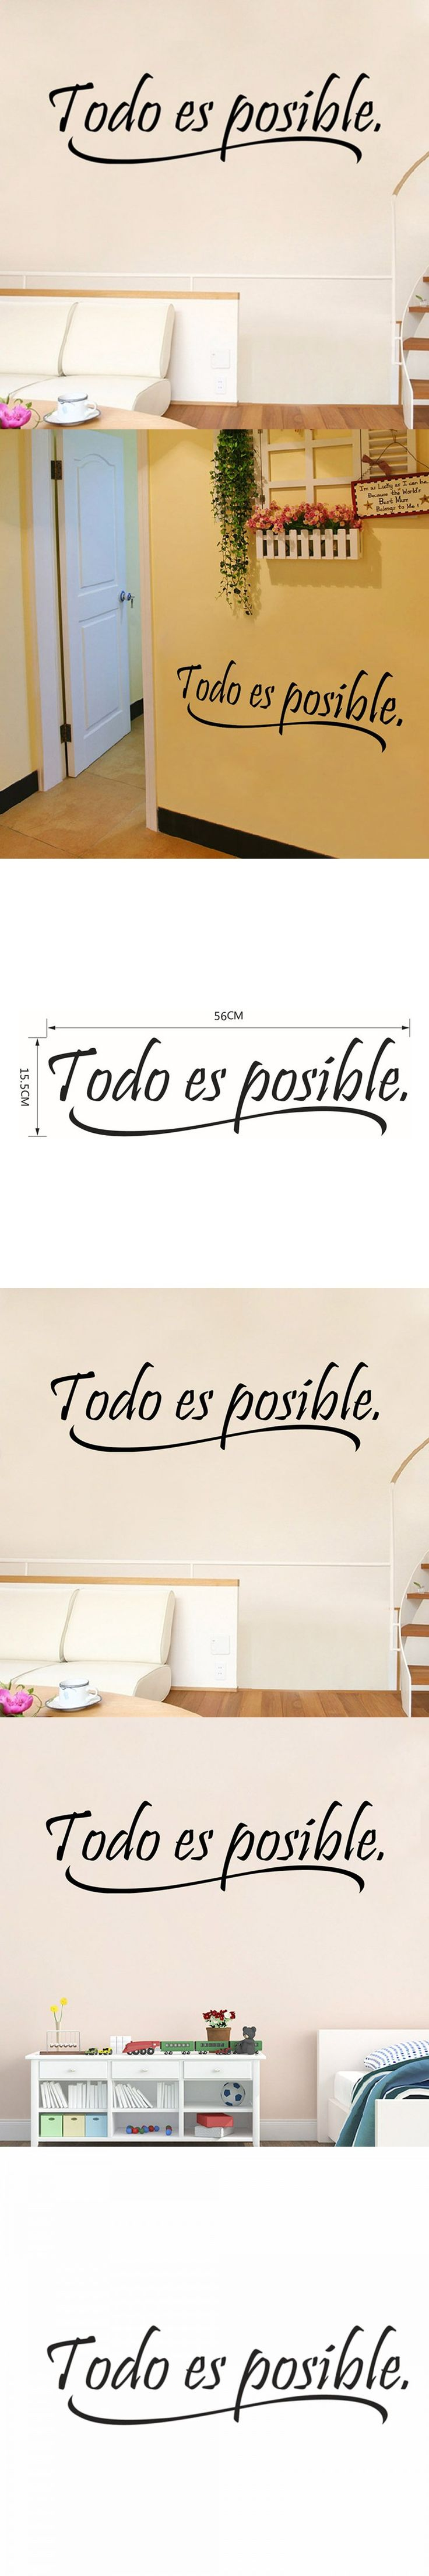 todo es posible spanish inspiring quotes wall sticker home